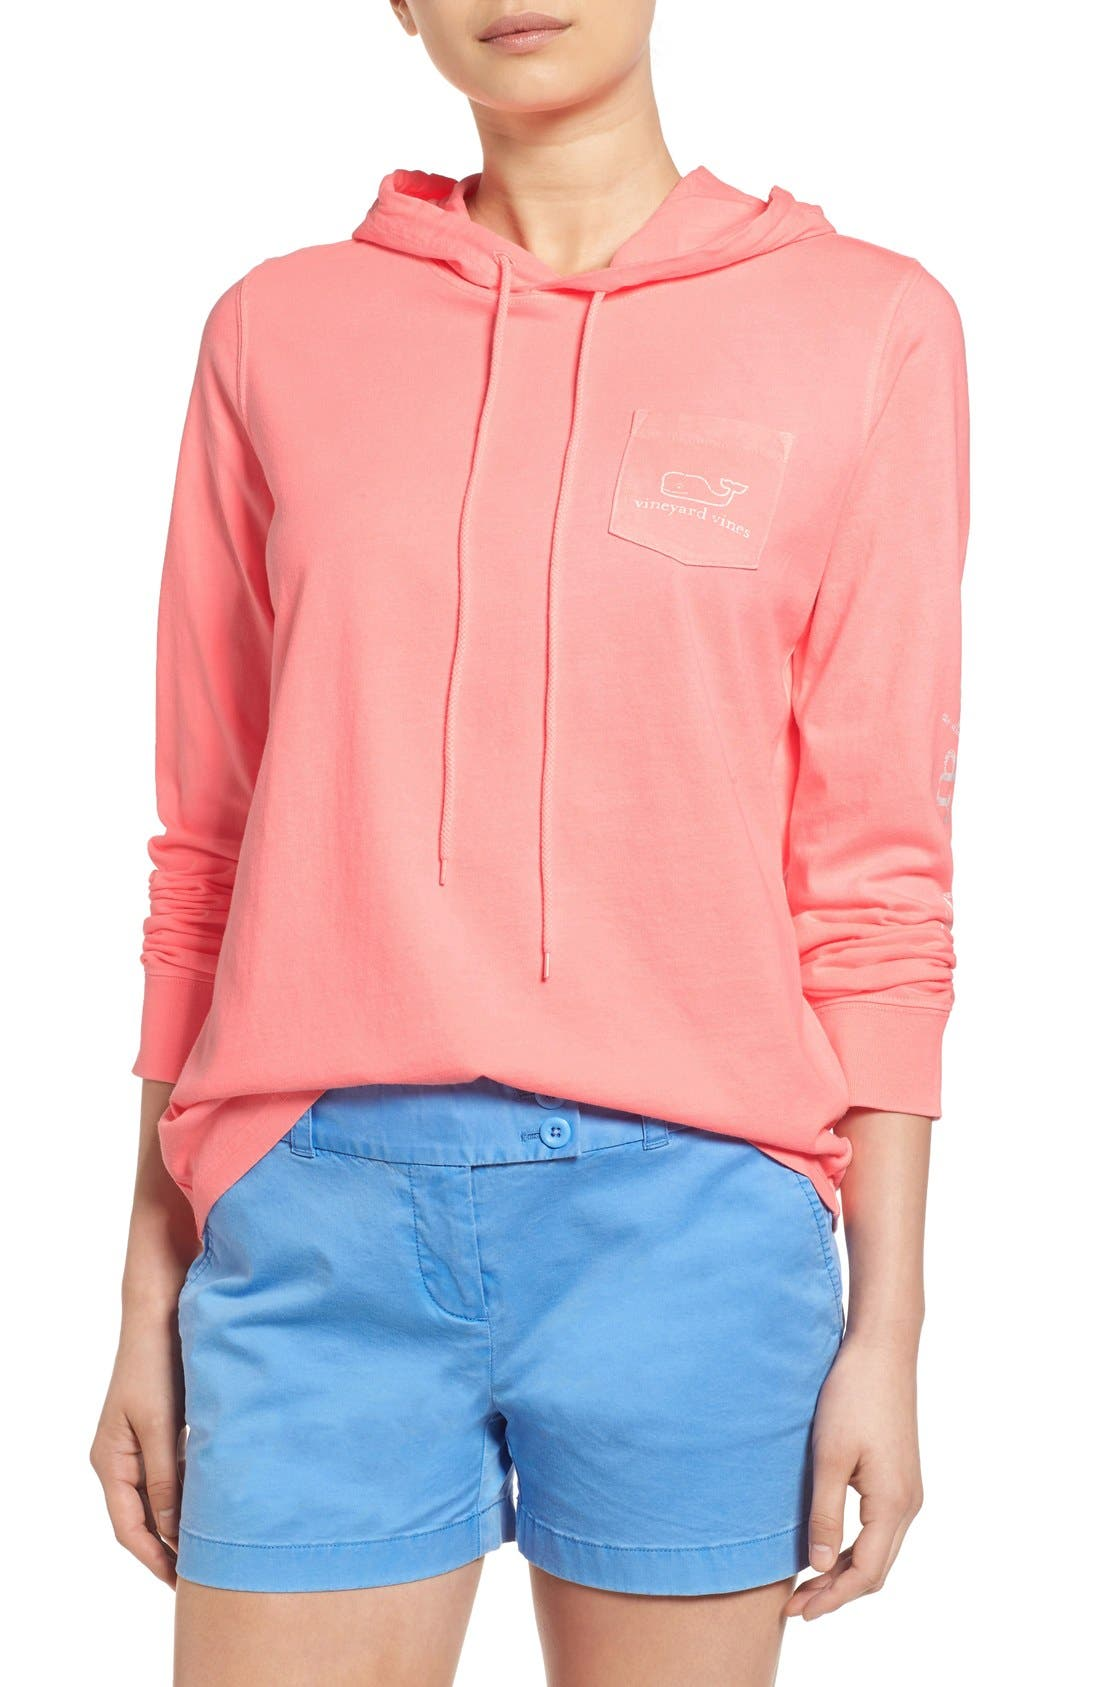 Main Image - Vineyard Vines Whale Graphic Long Sleeve Hooded Tee